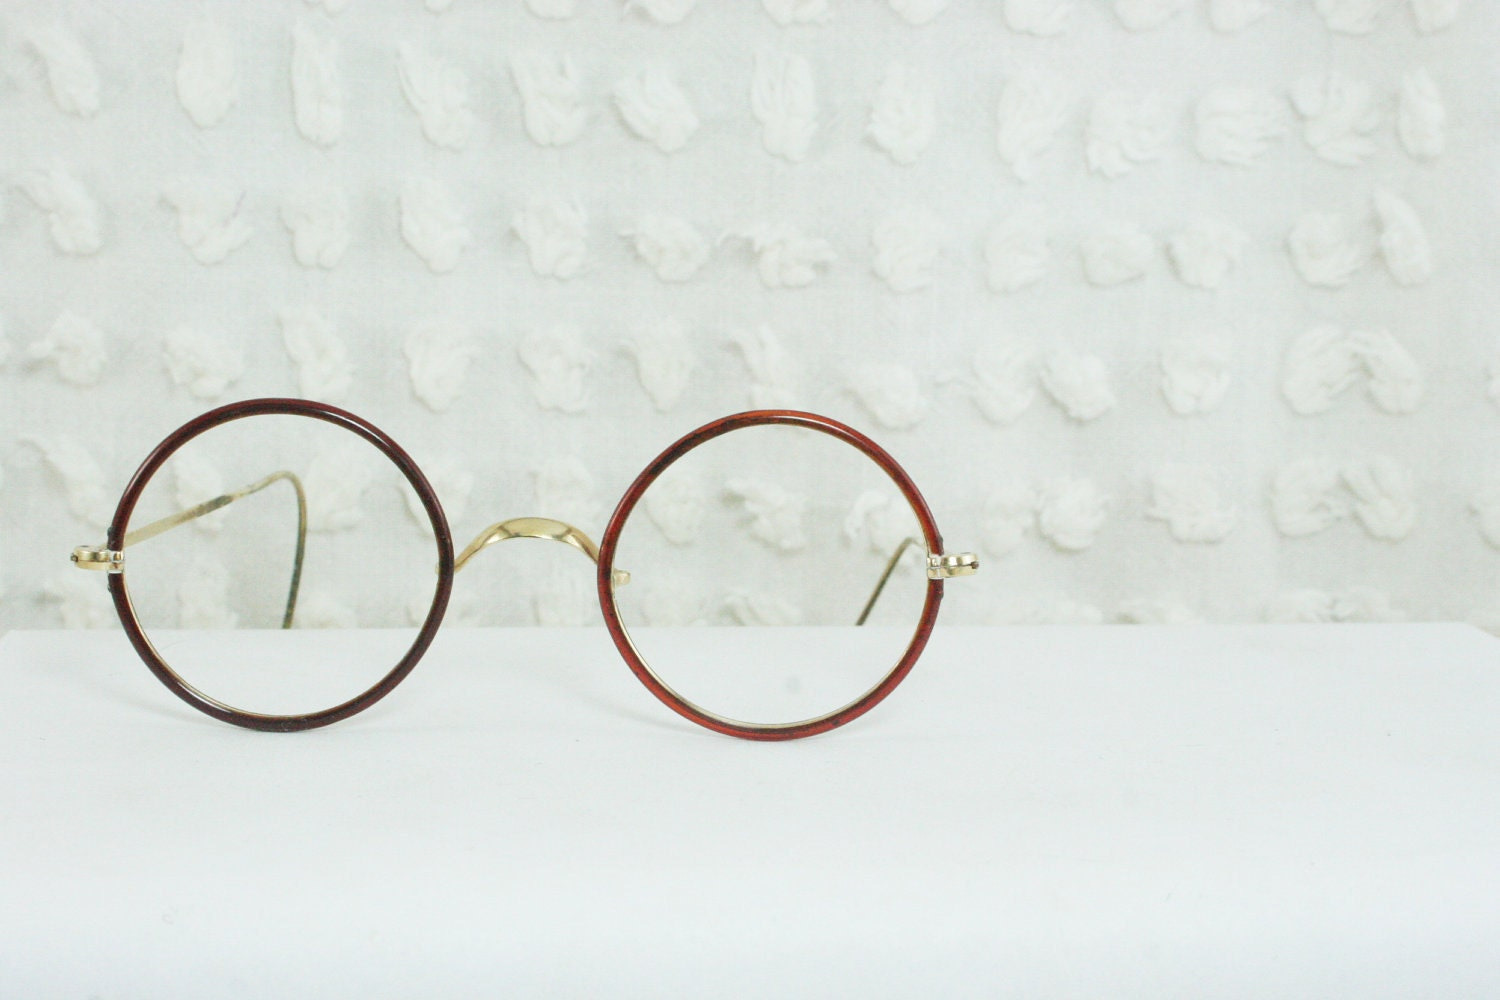 1930's Round Eyeglasses Burnt Orange Celluloid Covered Yellow Gold Filled Cable Temple Small Medium Unisex 39/24 by Windsor Optical - THAYEReyewear